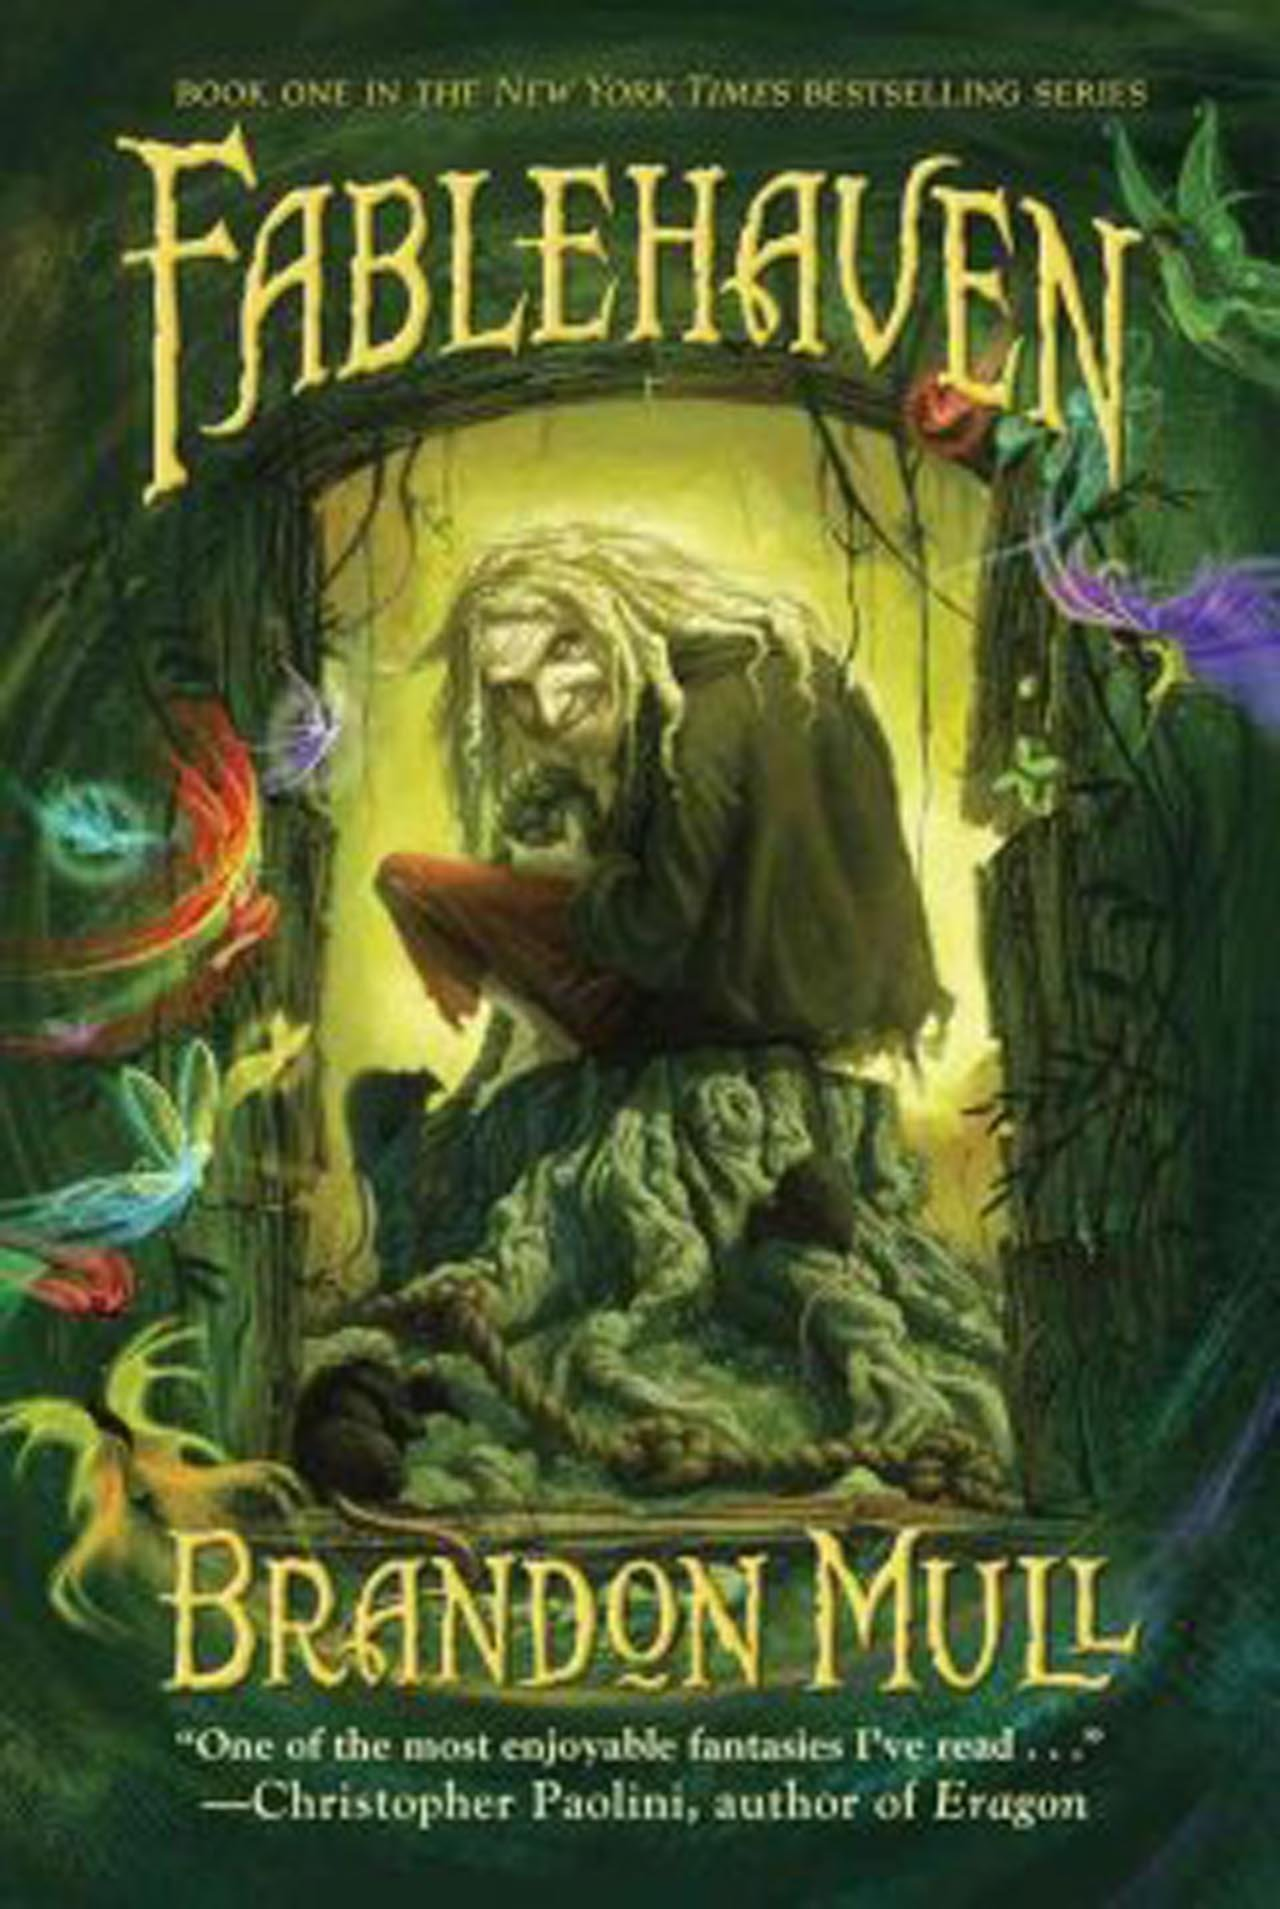 https://www.goodreads.com/book/show/44652.Fablehaven?from_search=true&search_version=service